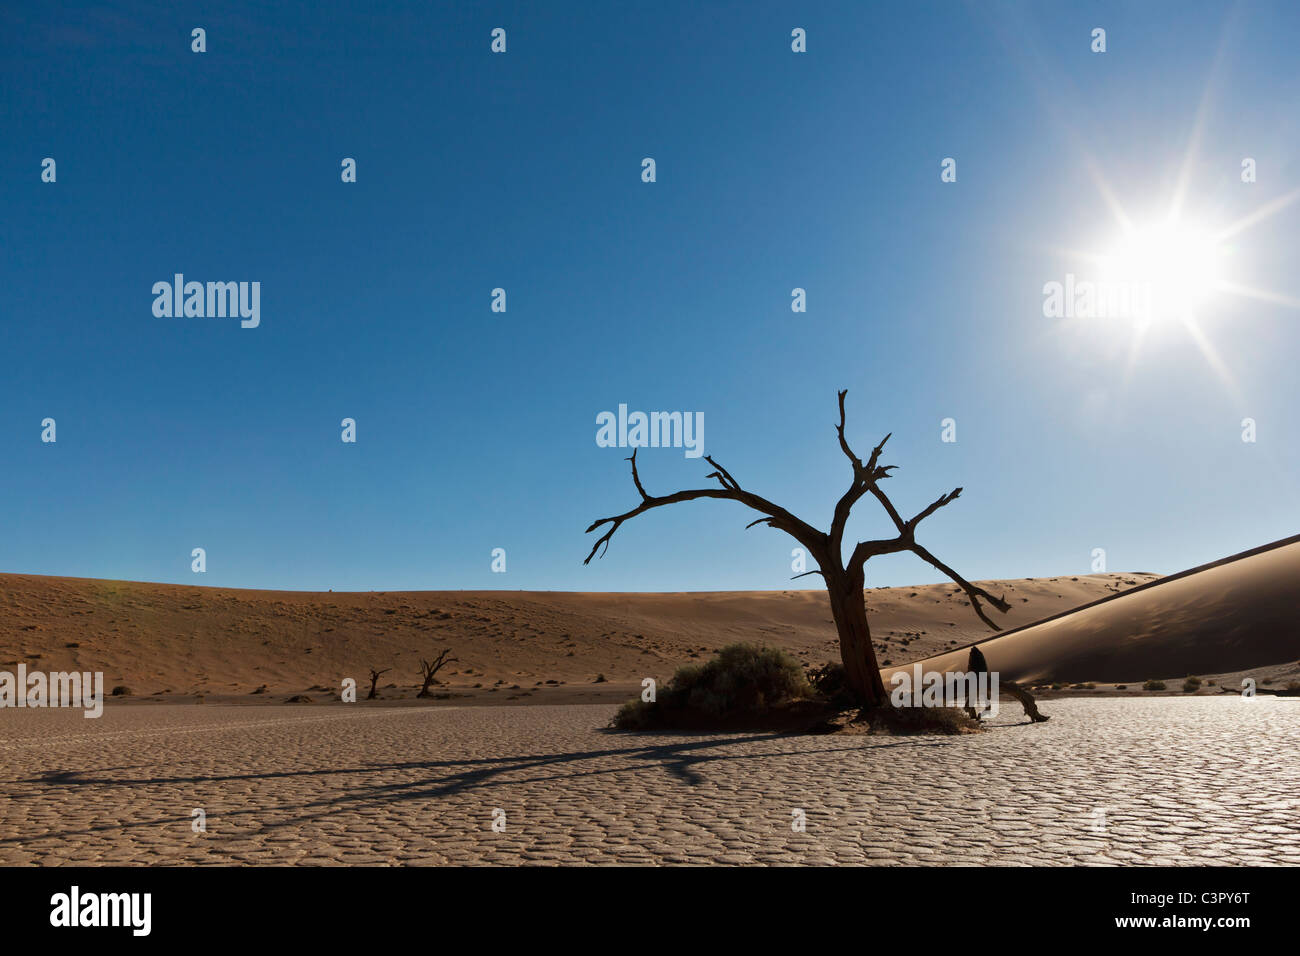 Africa, Namibia, Namib Naukluft National Park, Dead tree in the namib desert - Stock Image